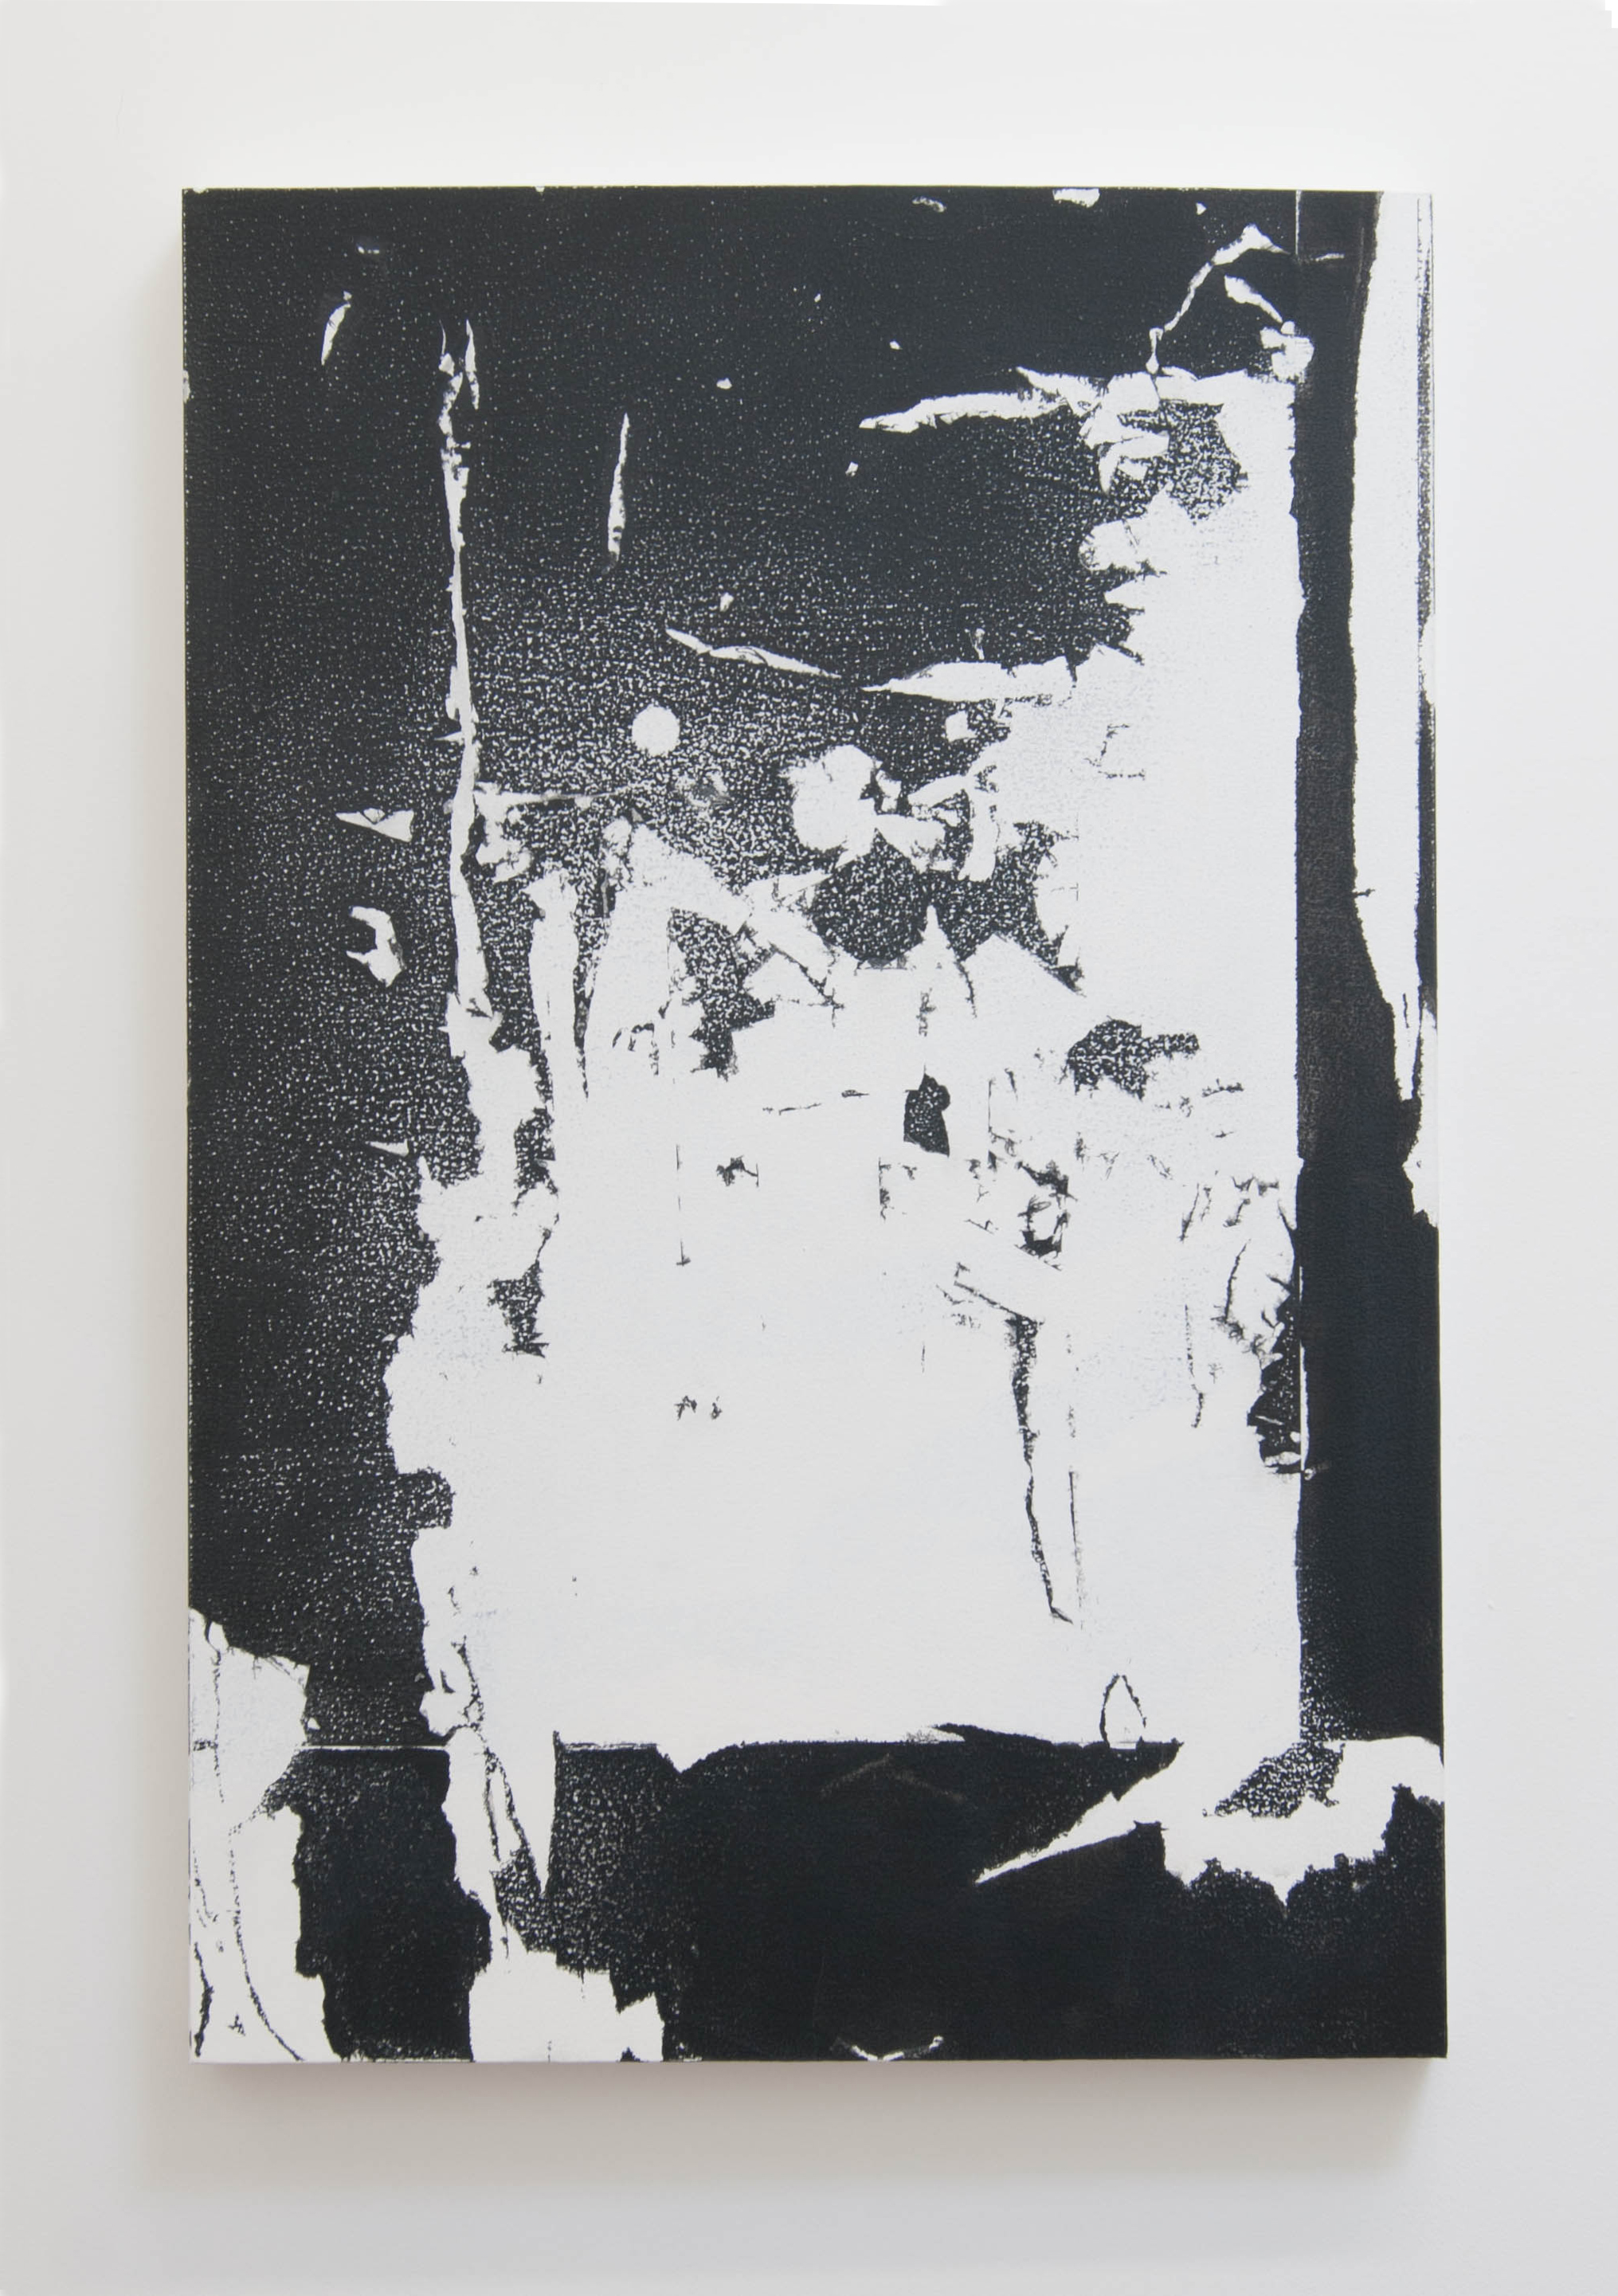 FTP, 2013  Acrylic on panel, 30 x 20 inches